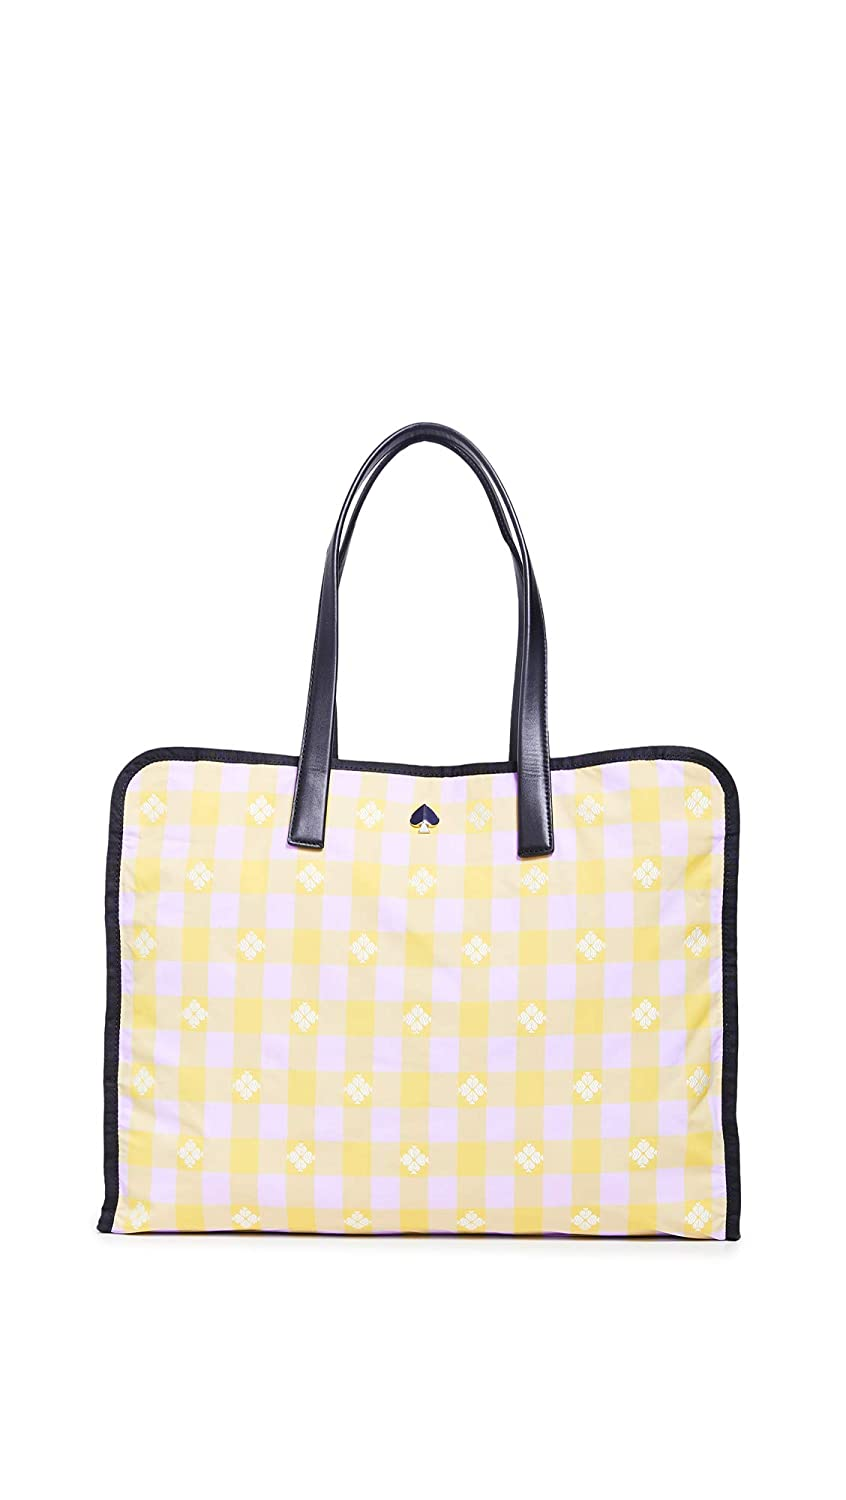 Kate Spade New York レディース B07ND51R9M Frozen Lilac/Chartreuse